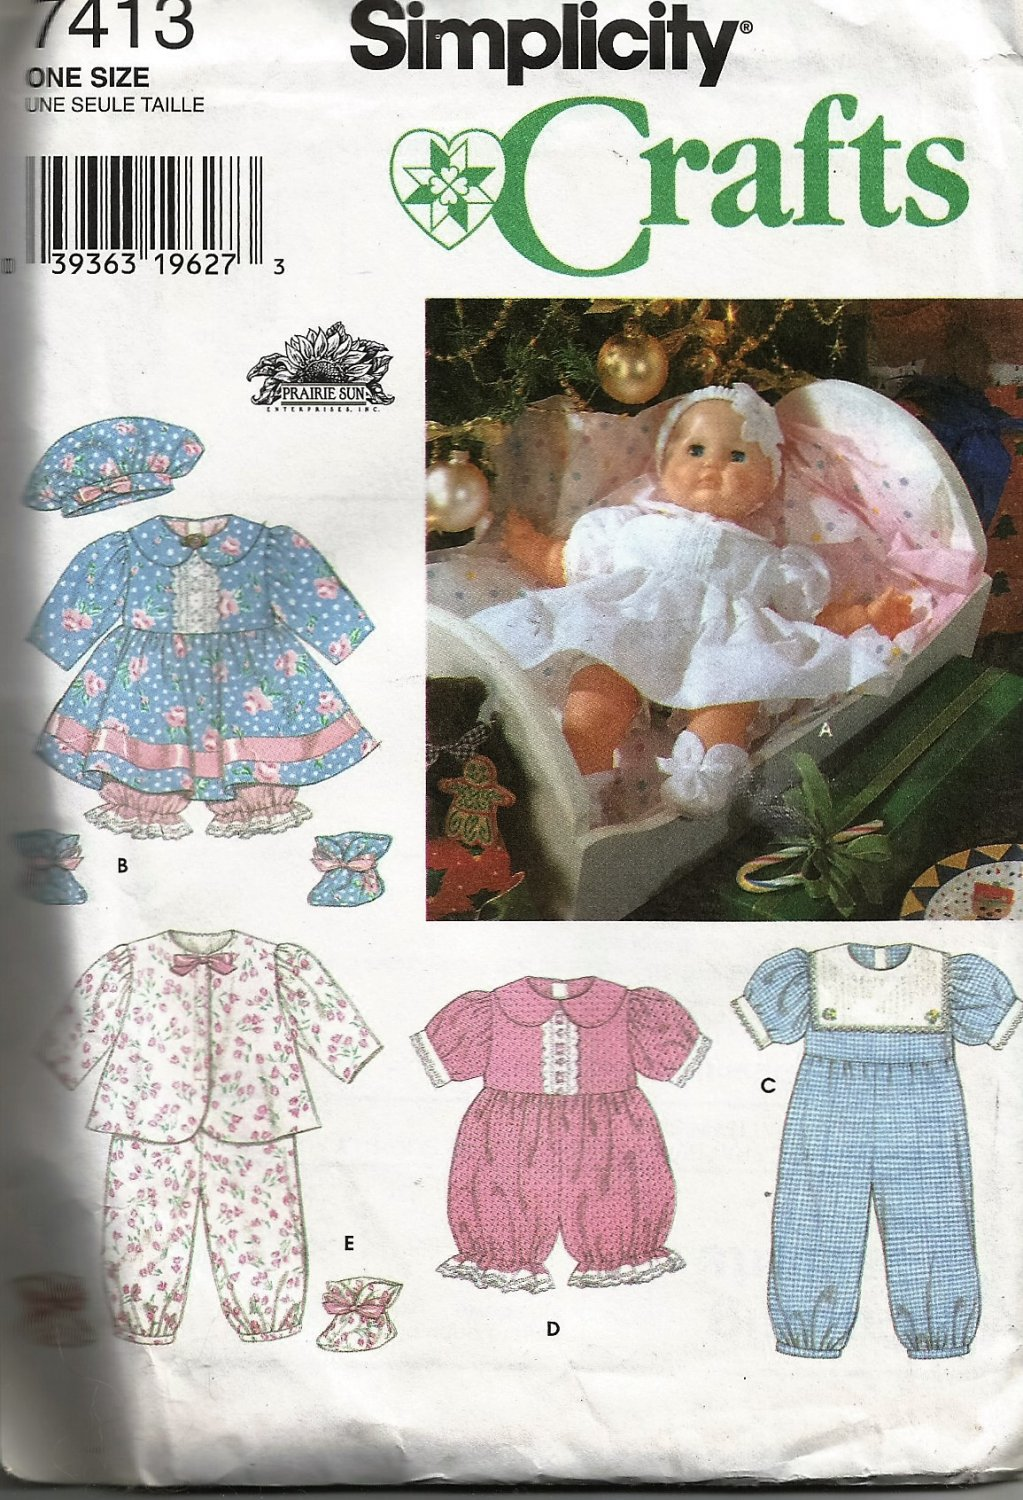 Simplicity 7413 Baby Doll Clothes sewing pattern for 20 inch doll